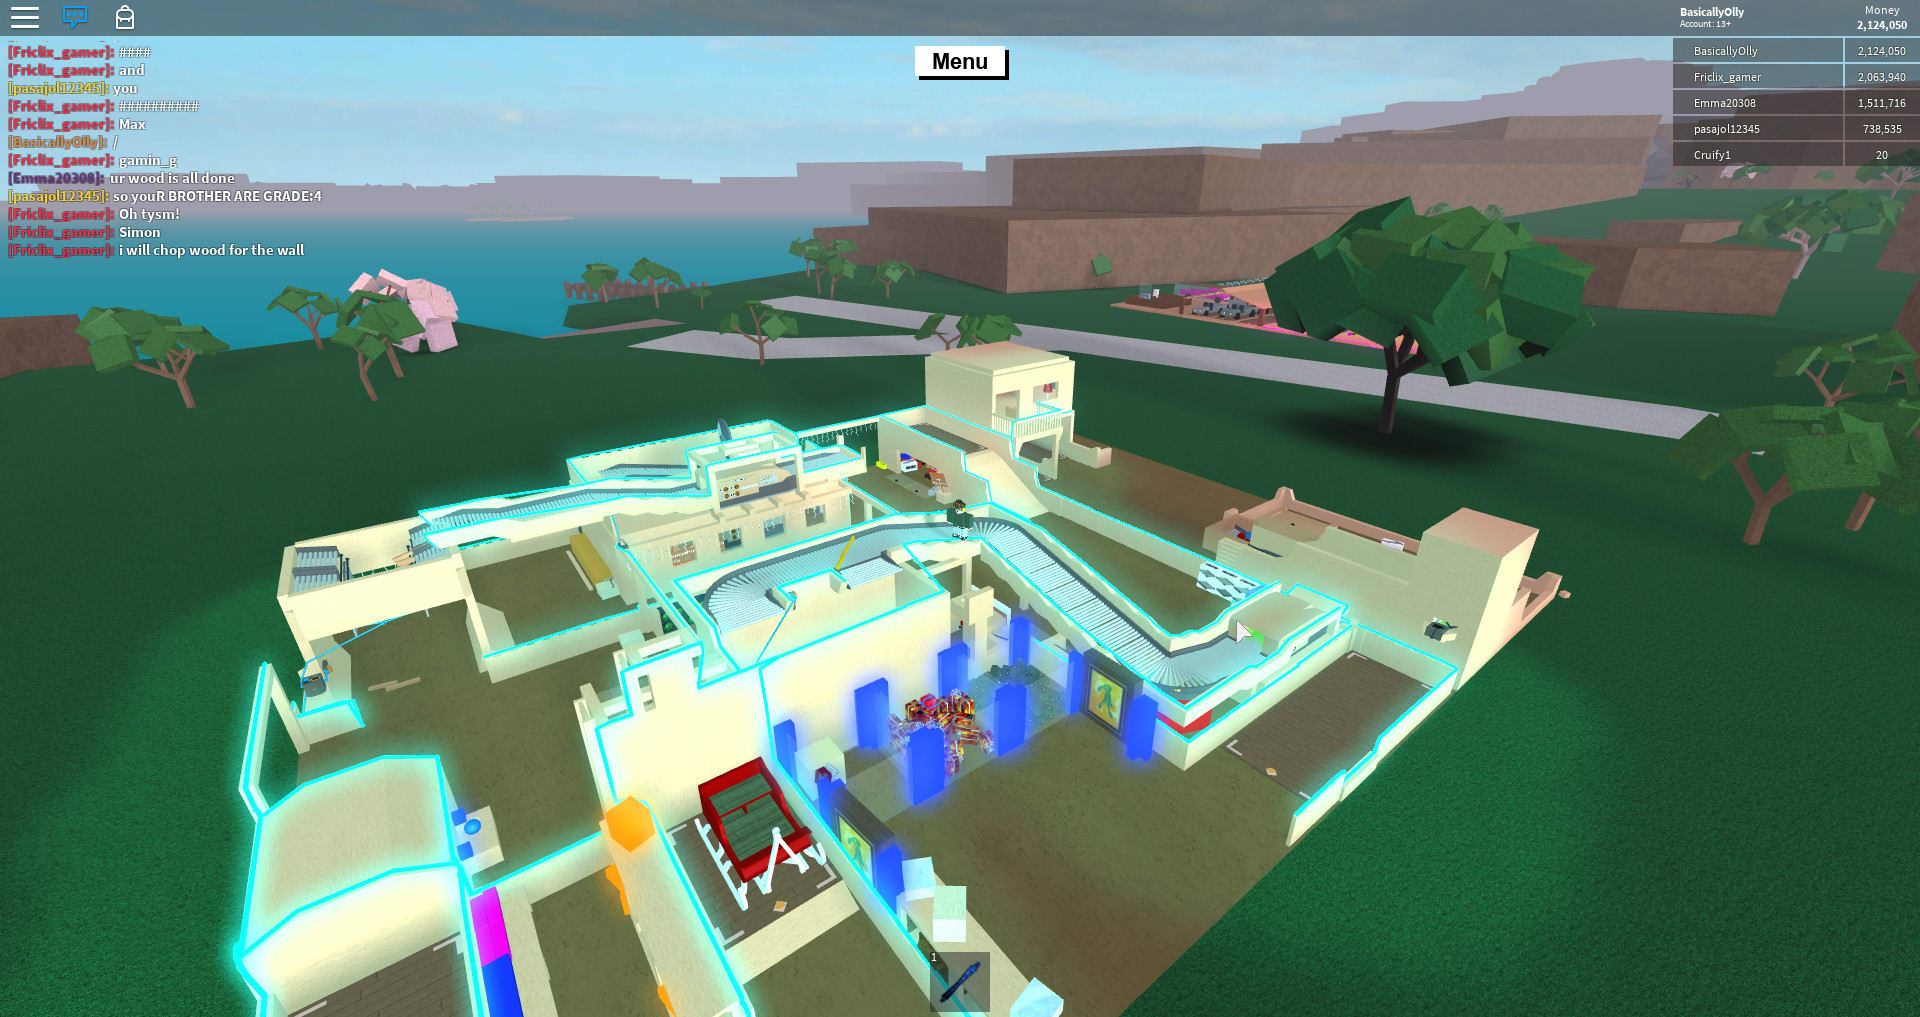 Tips Roblox Lumber Tycoon 2 Free Android App Market - Sell You The Rest Of My Roblox Lumber Tycoon 2 Plot By Basicallyolly